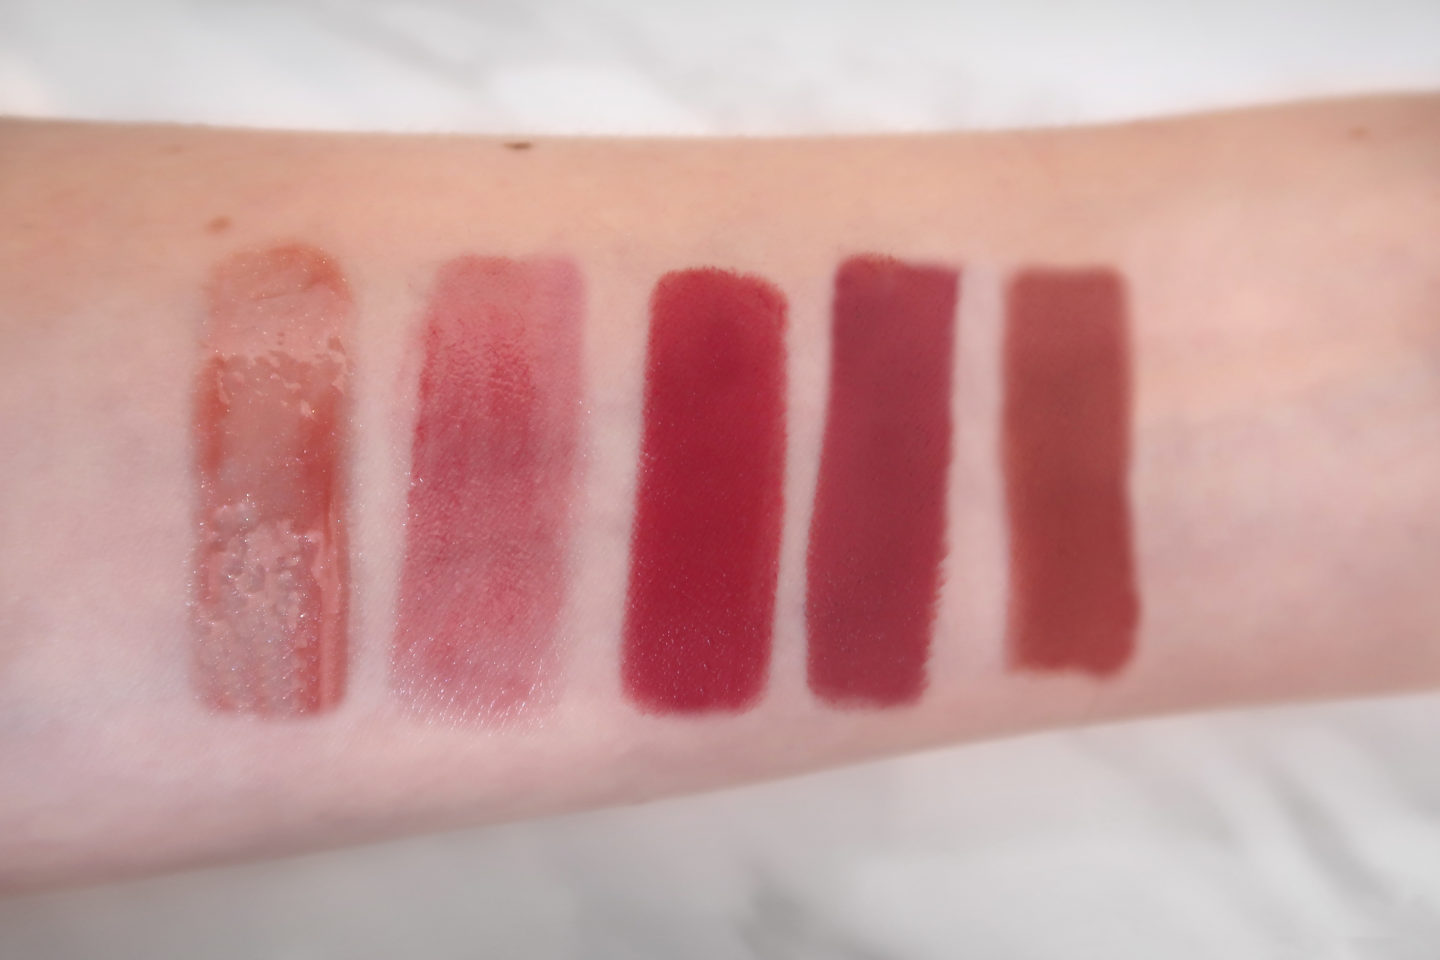 Arm, Lippenstifte, Swatches, Lippen